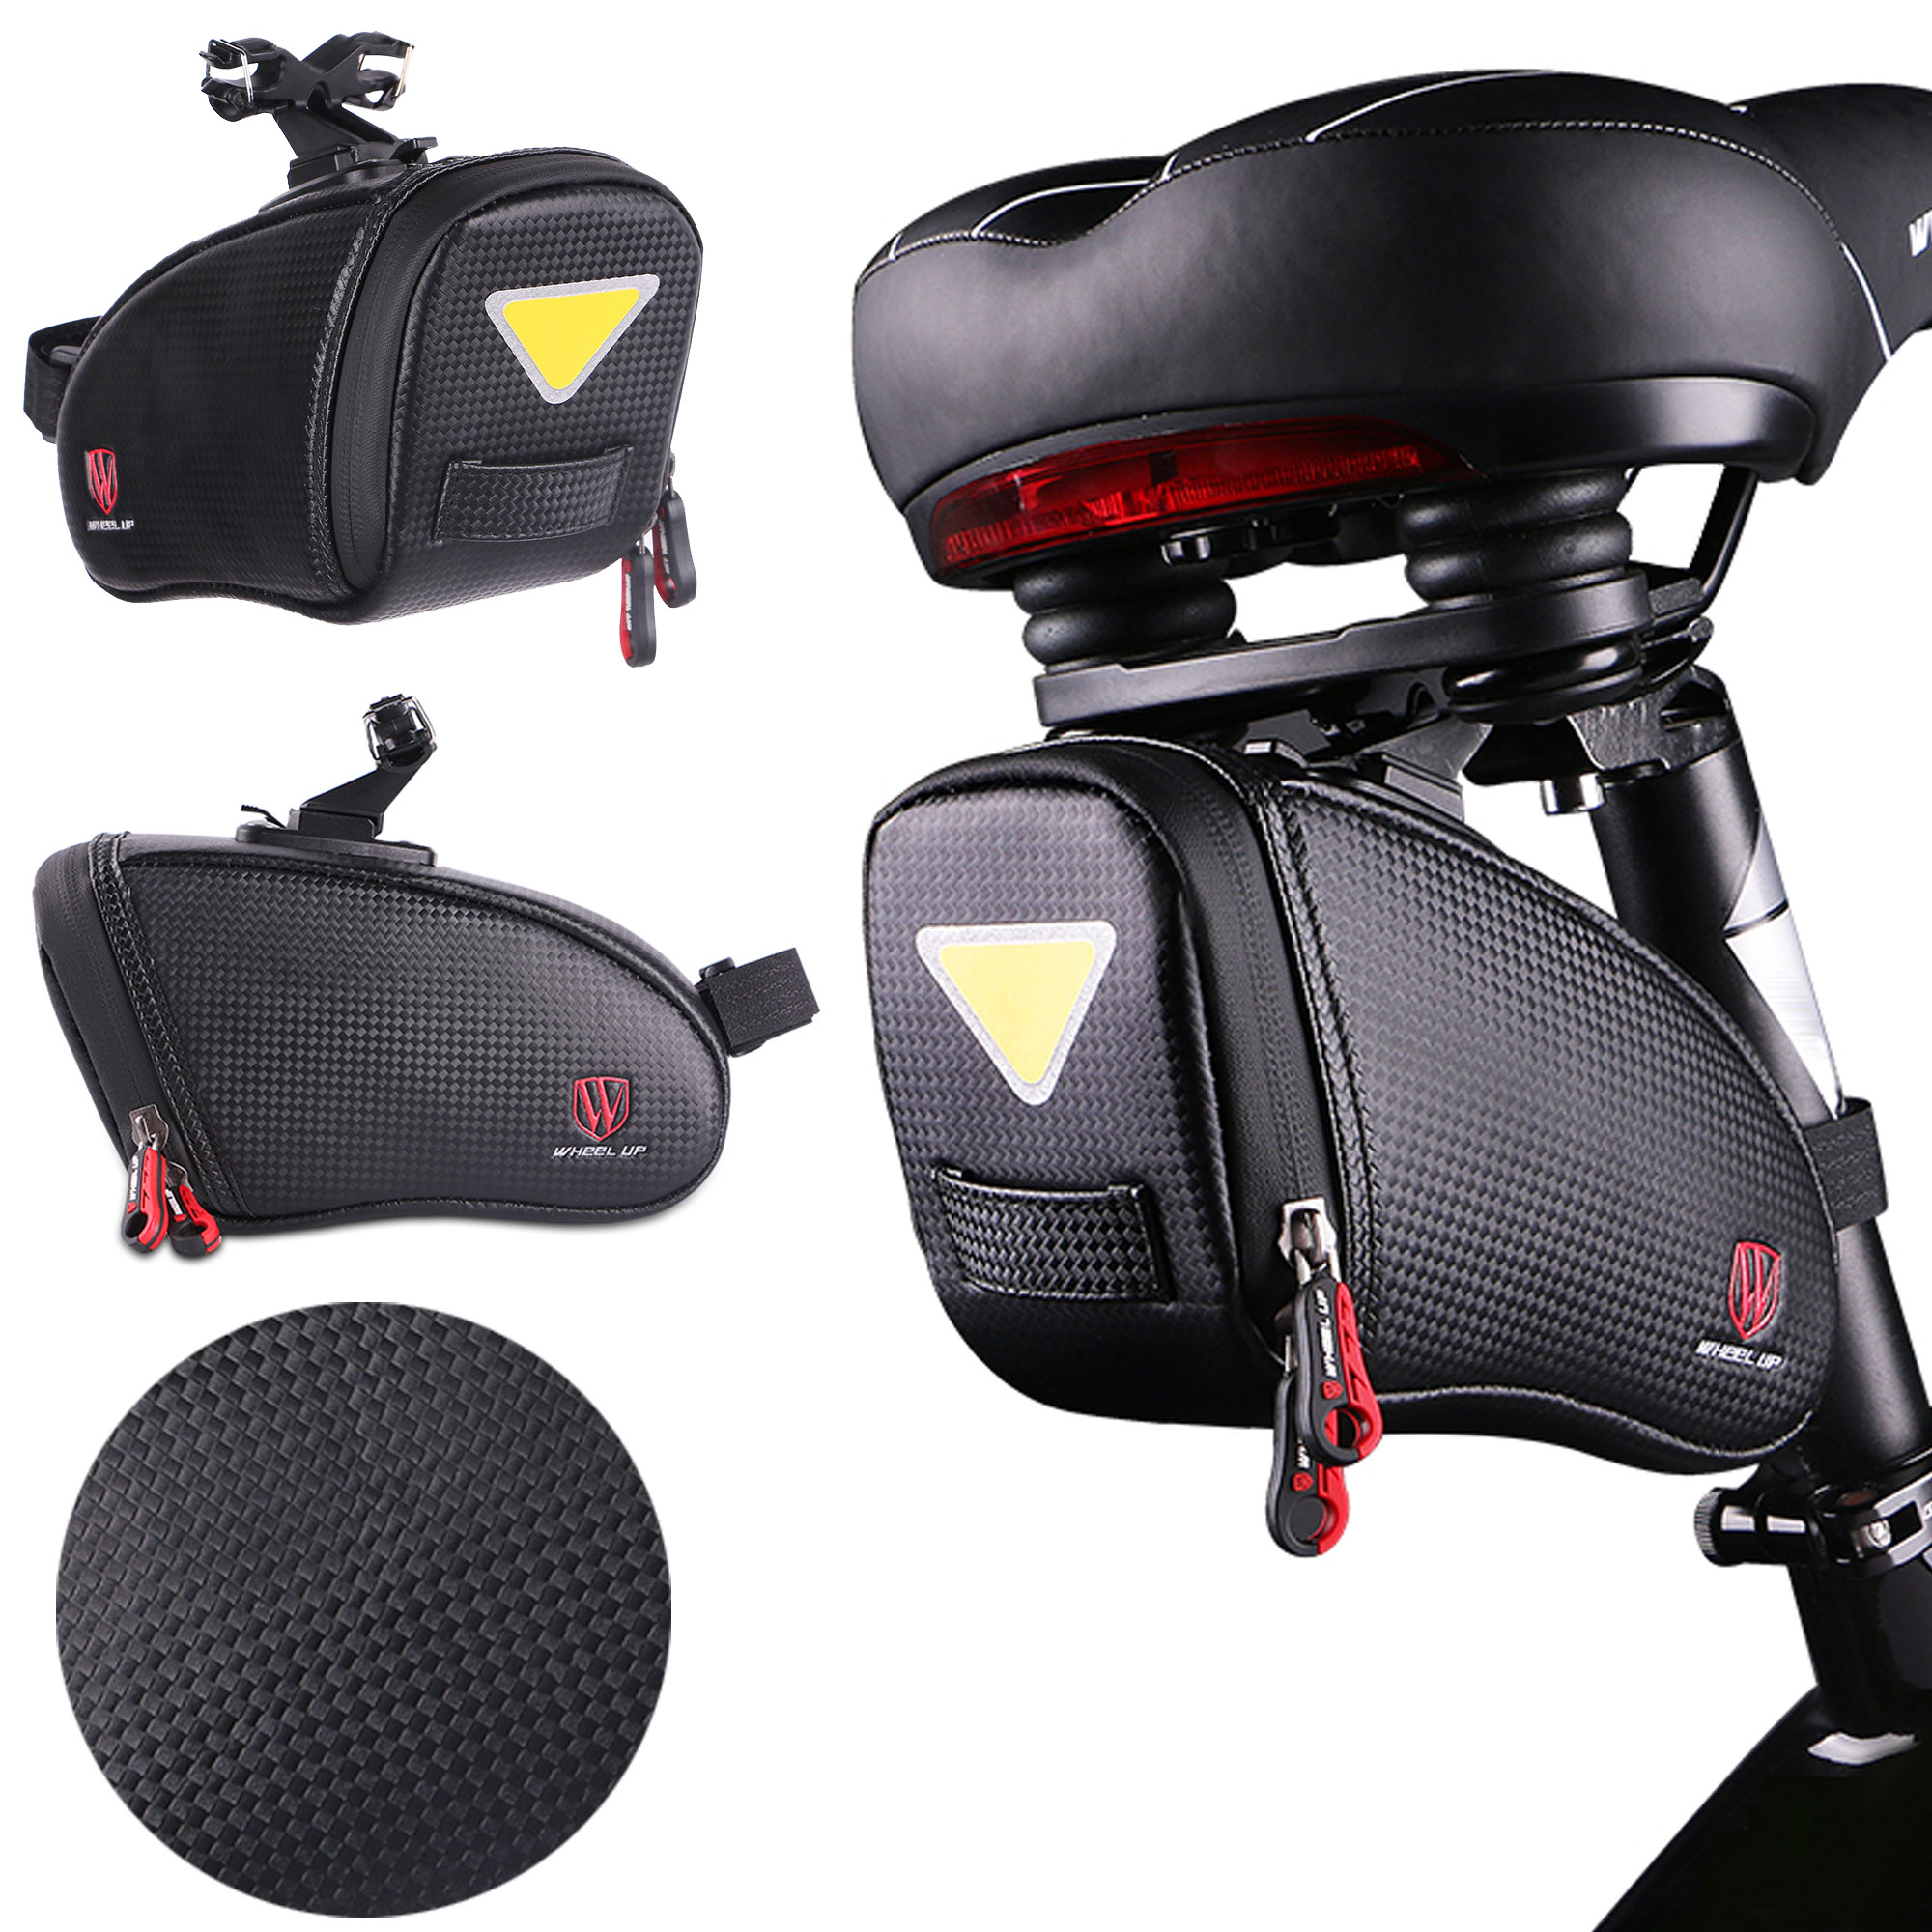 Bike Holder Seat Saddle Bag Bicycle Rear Tail Strap-On Pouch Large NEW SB1